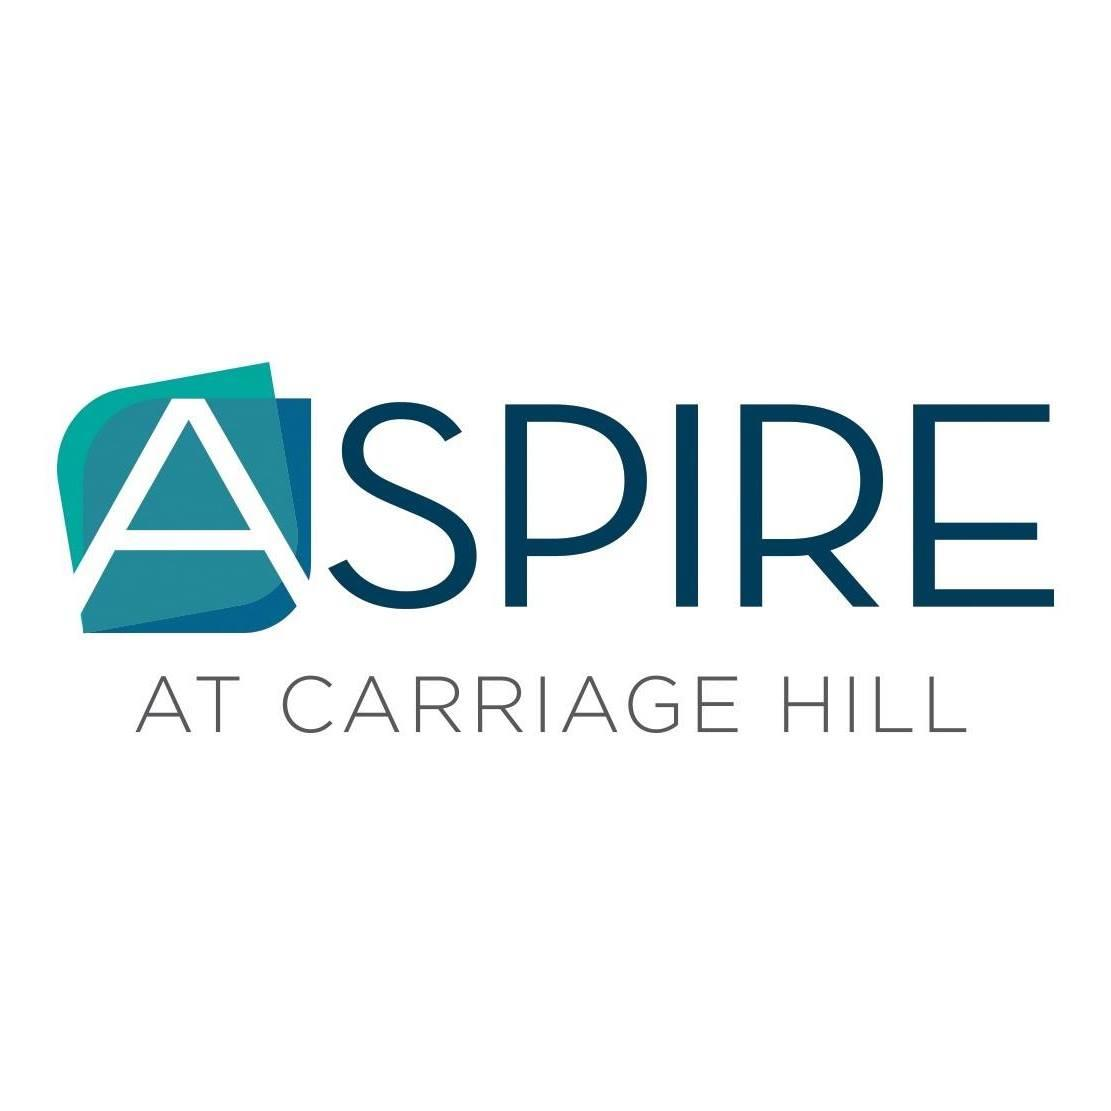 Aspire at Carriage Hill